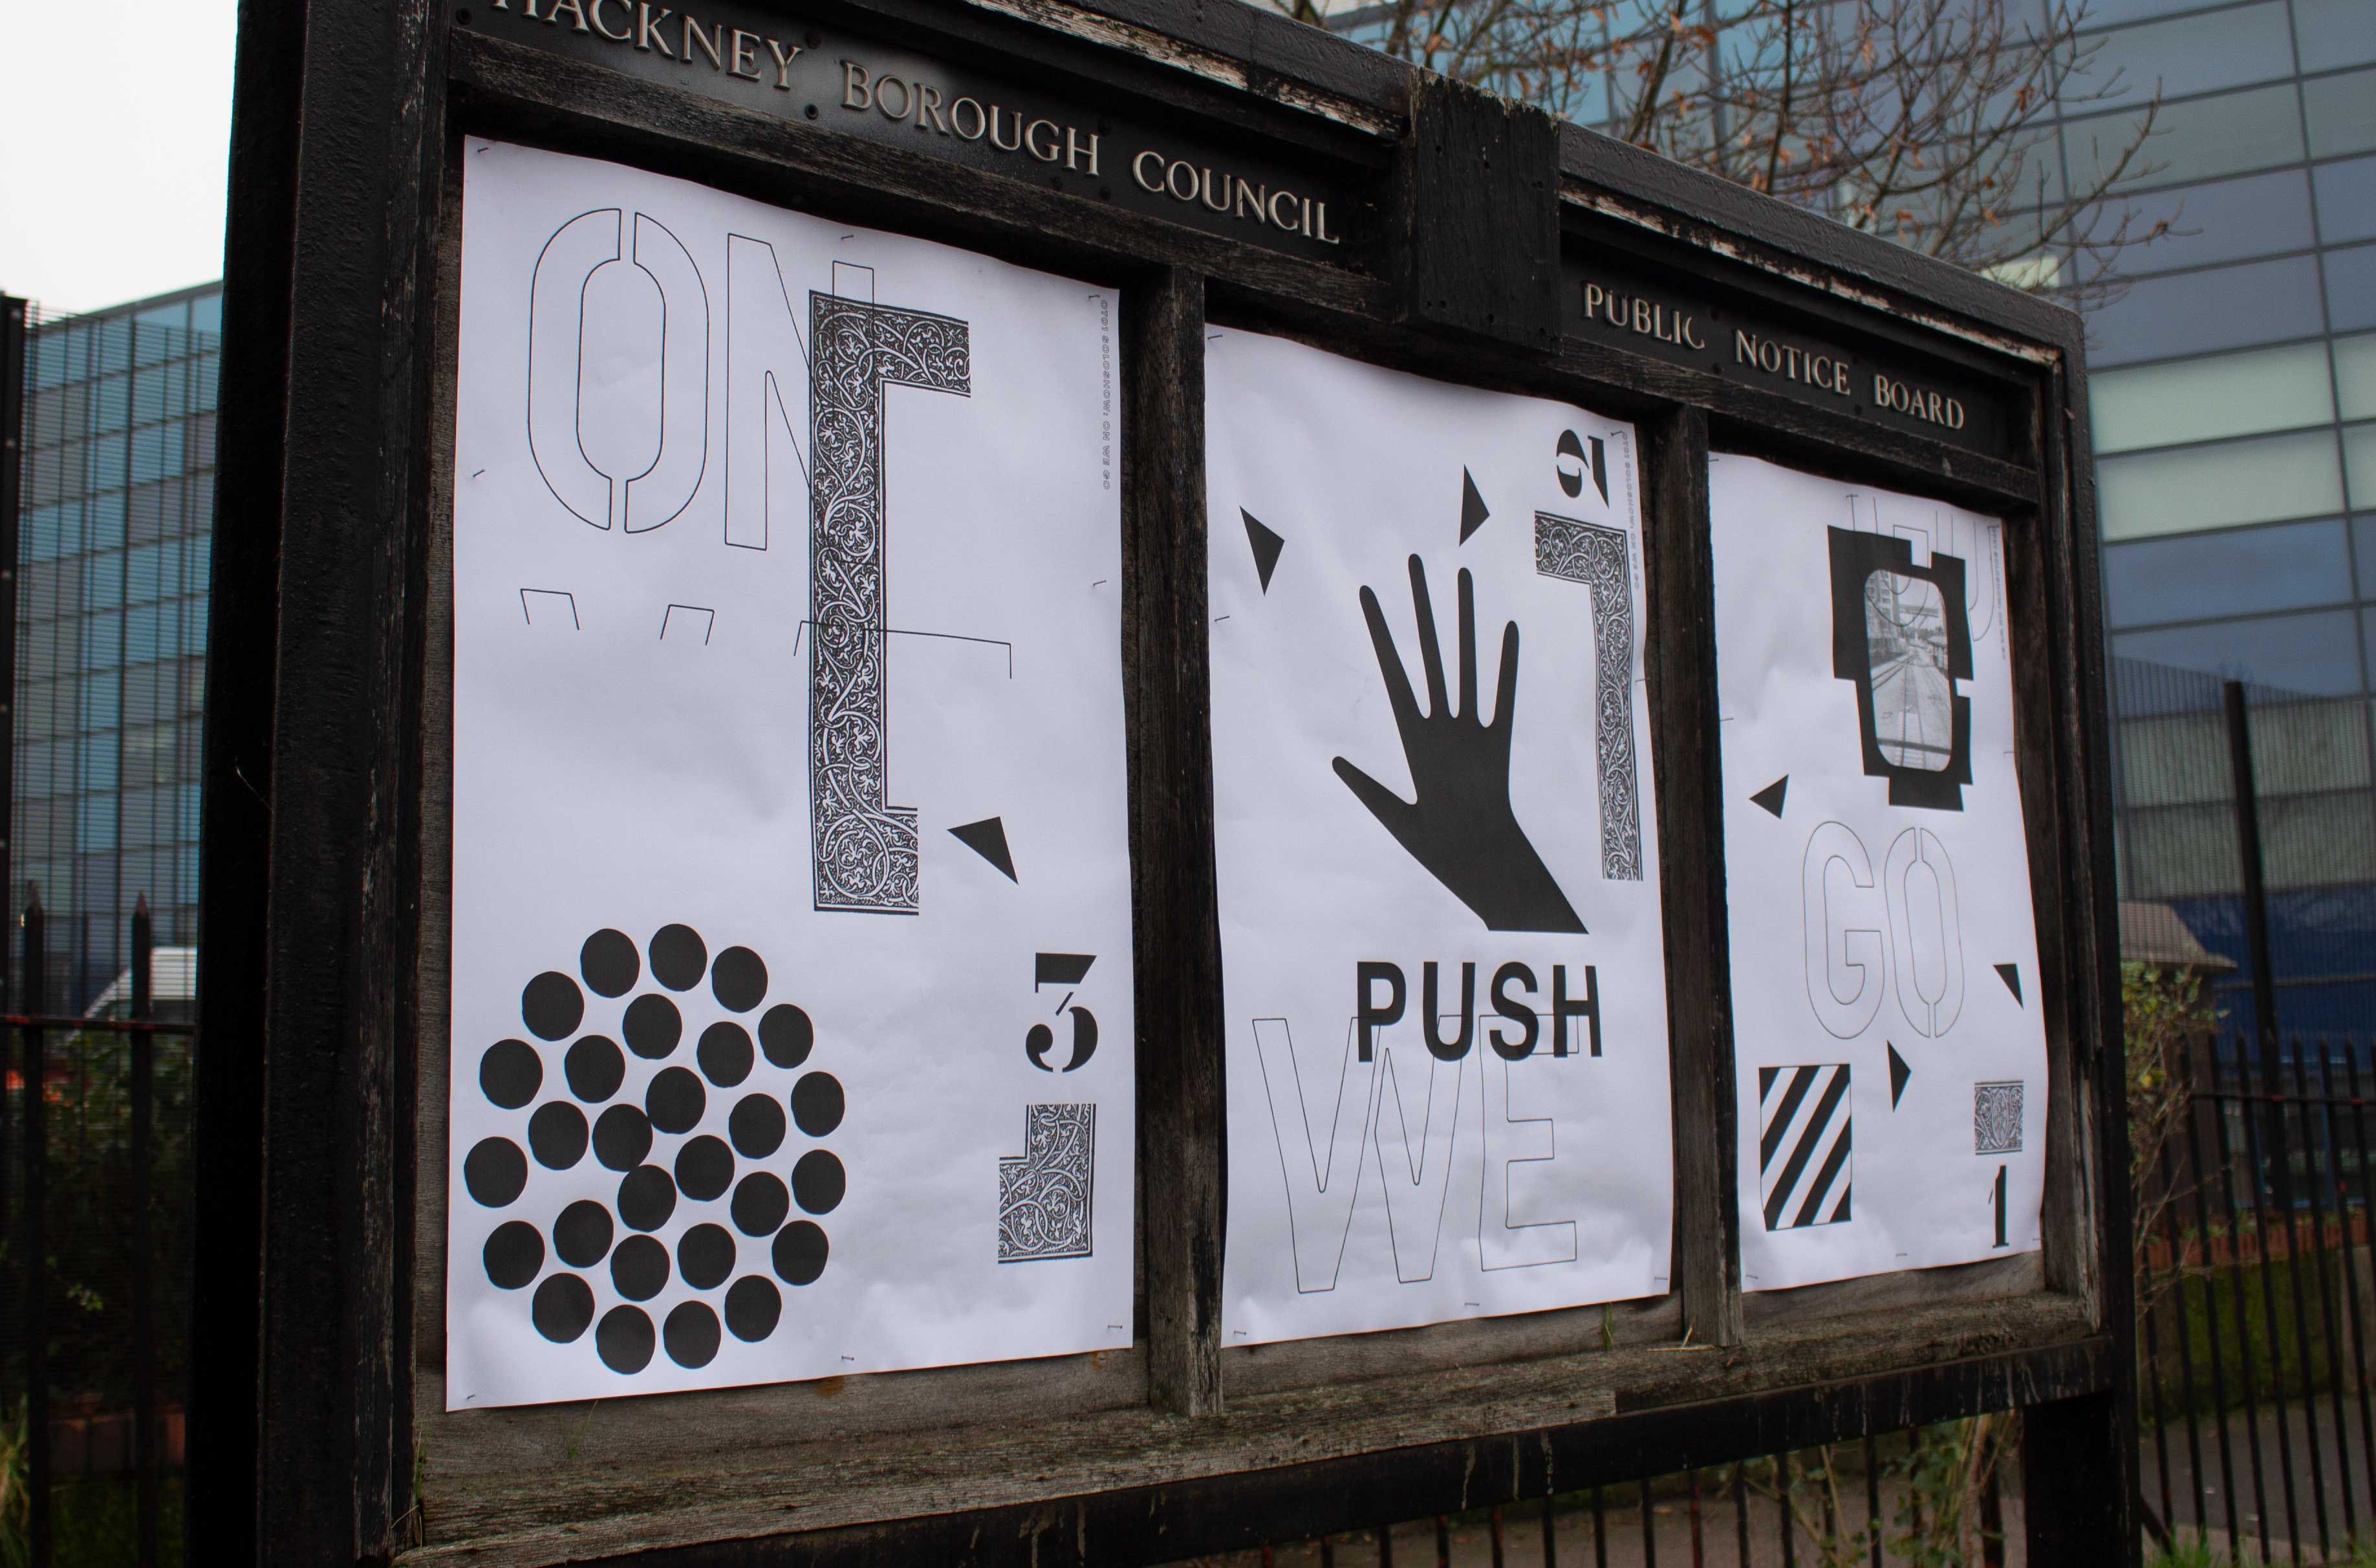 The Solo show was a pop-up 24hr exhibition on un-used London Borough of Hackney noticeboards.